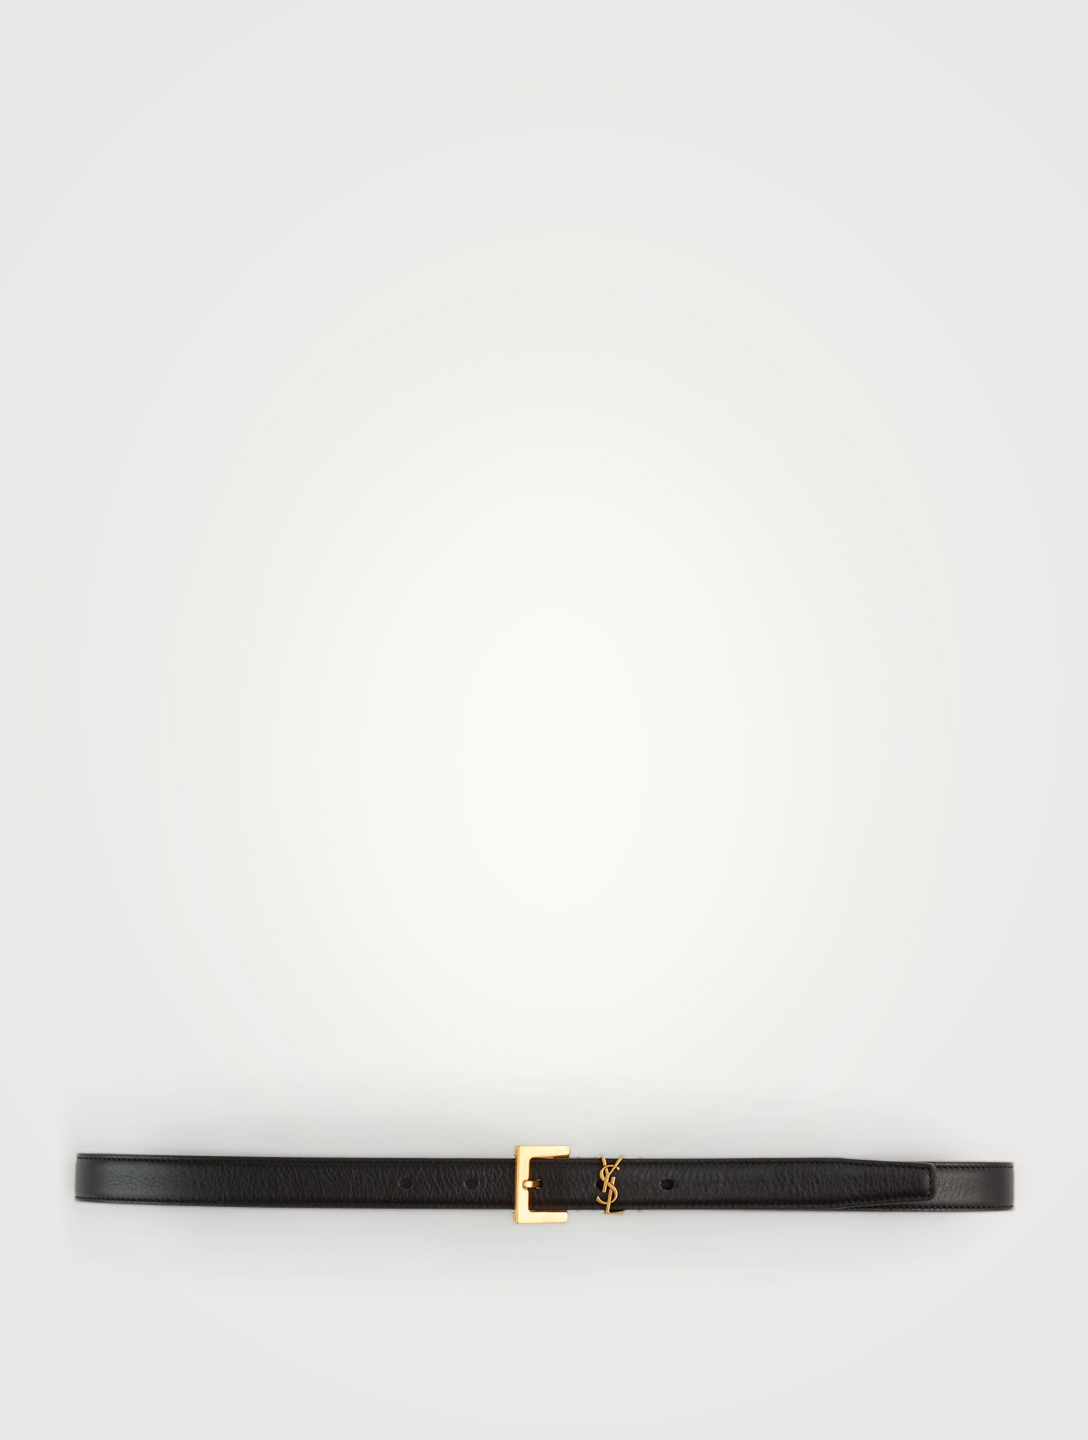 SAINT LAURENT YSL Monogram Leather Belt Women's Black